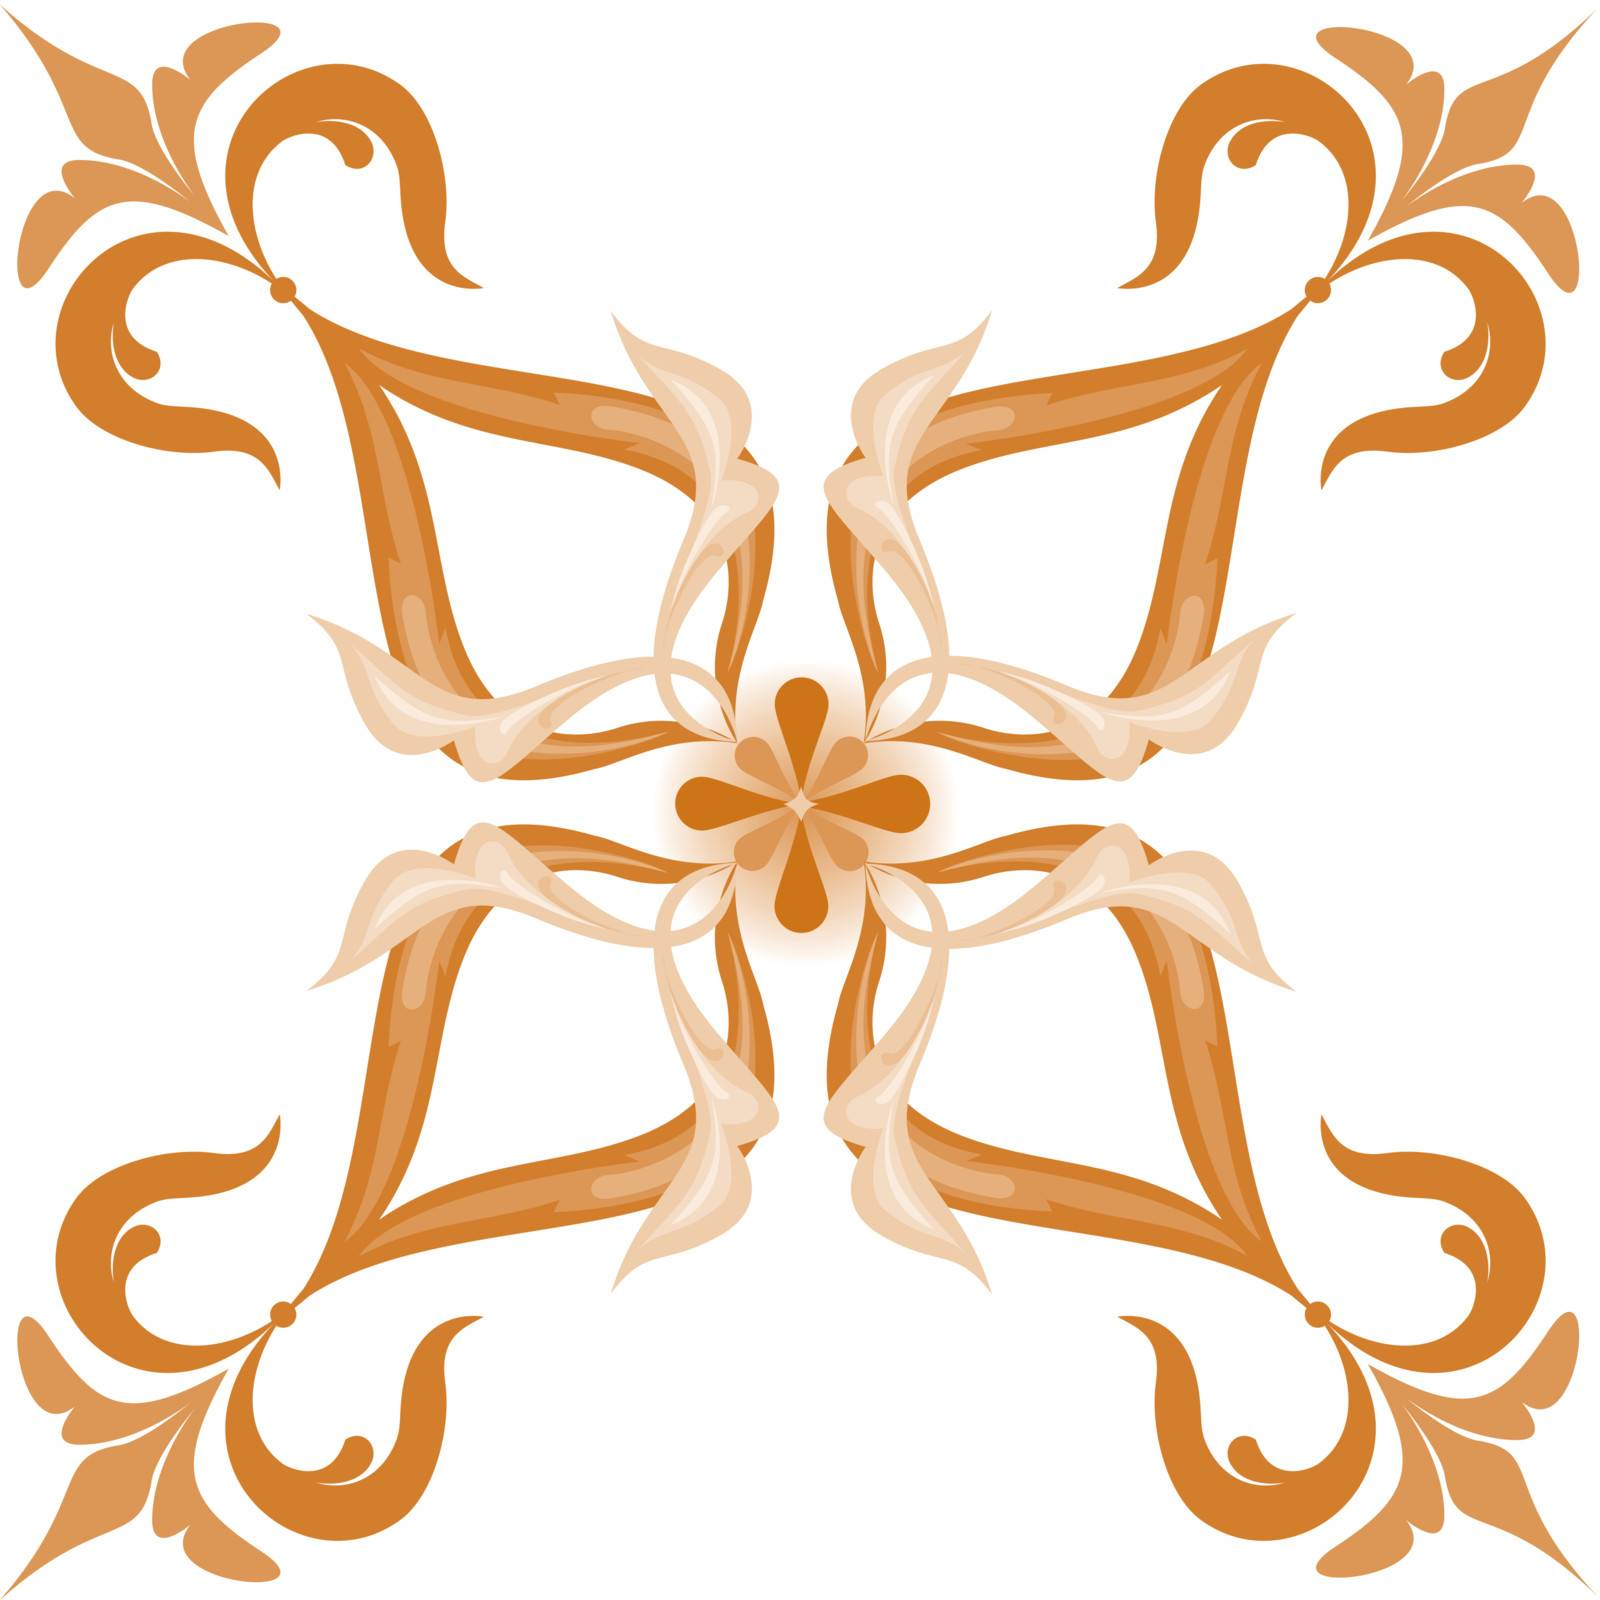 ornament on a white background